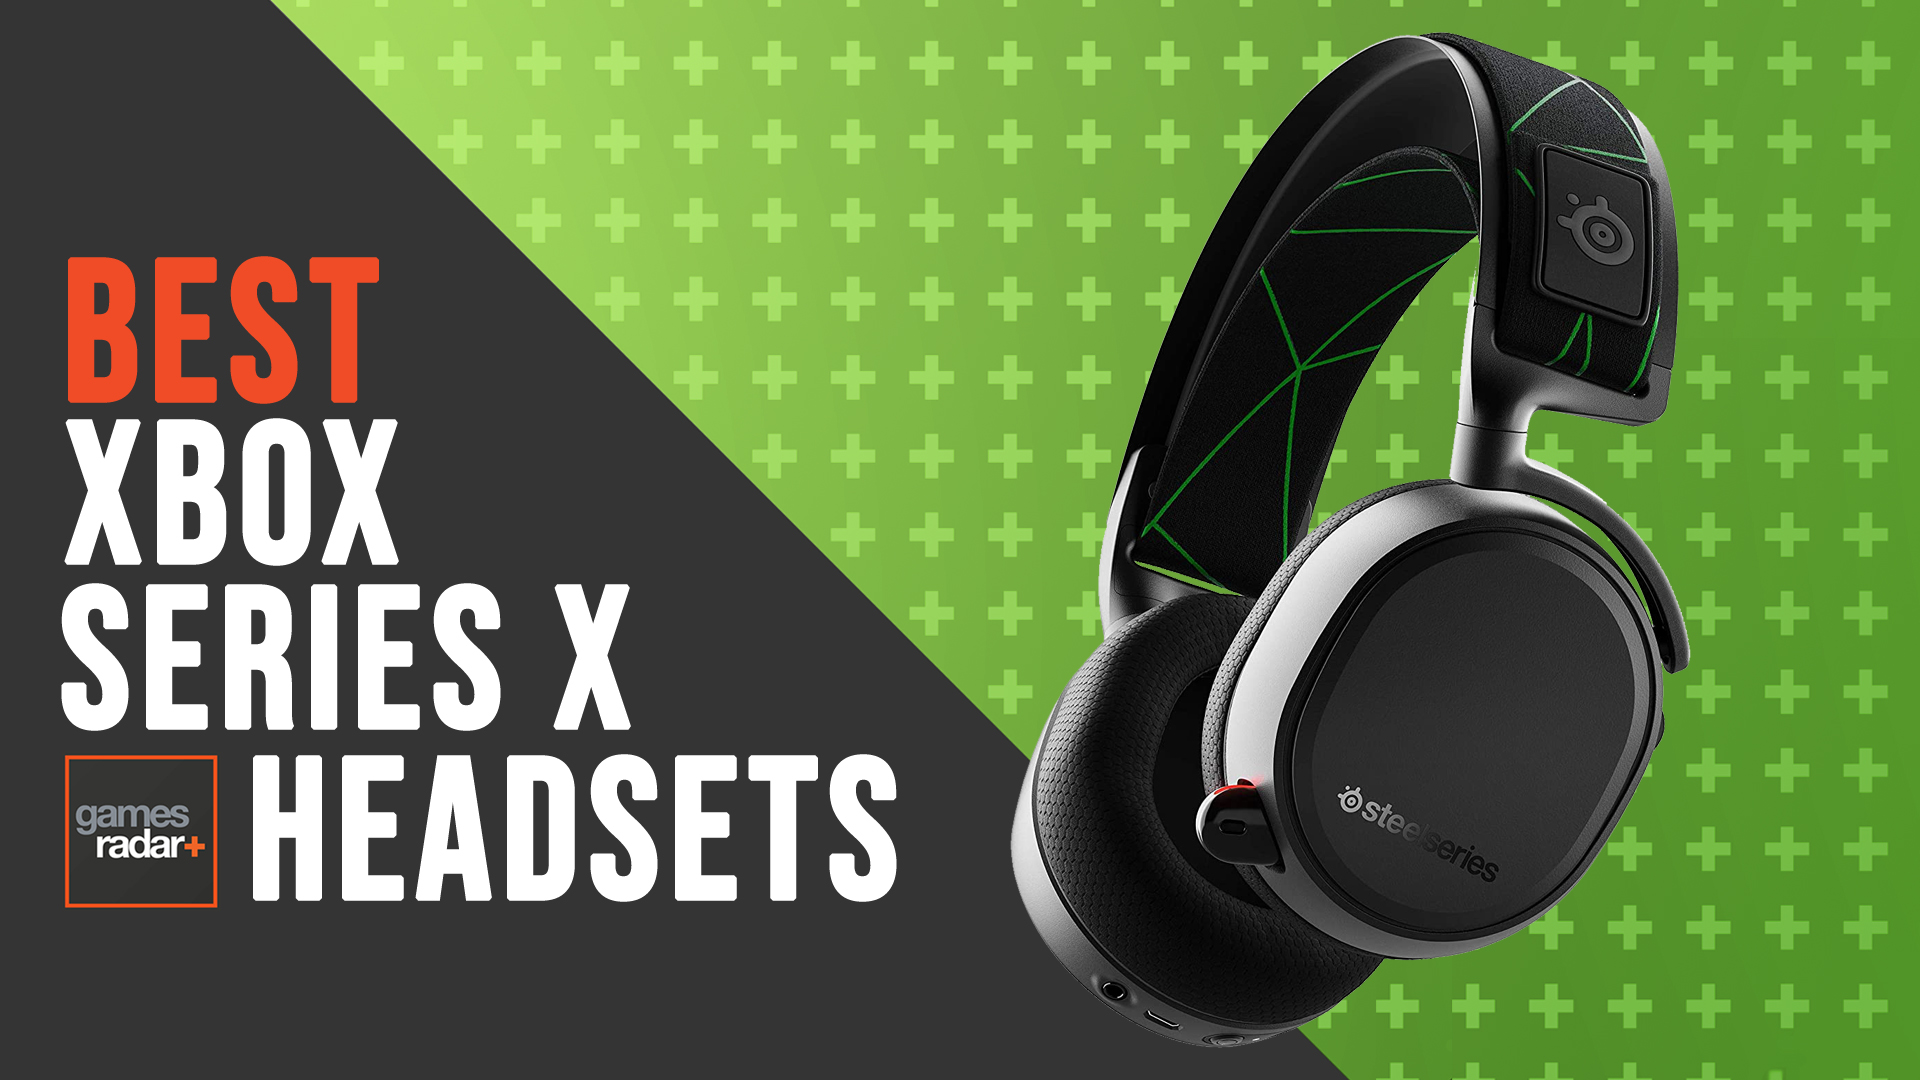 Best Xbox Series X Headset Get The Best Audio Companion For Your New Xbox Console Gamesradar